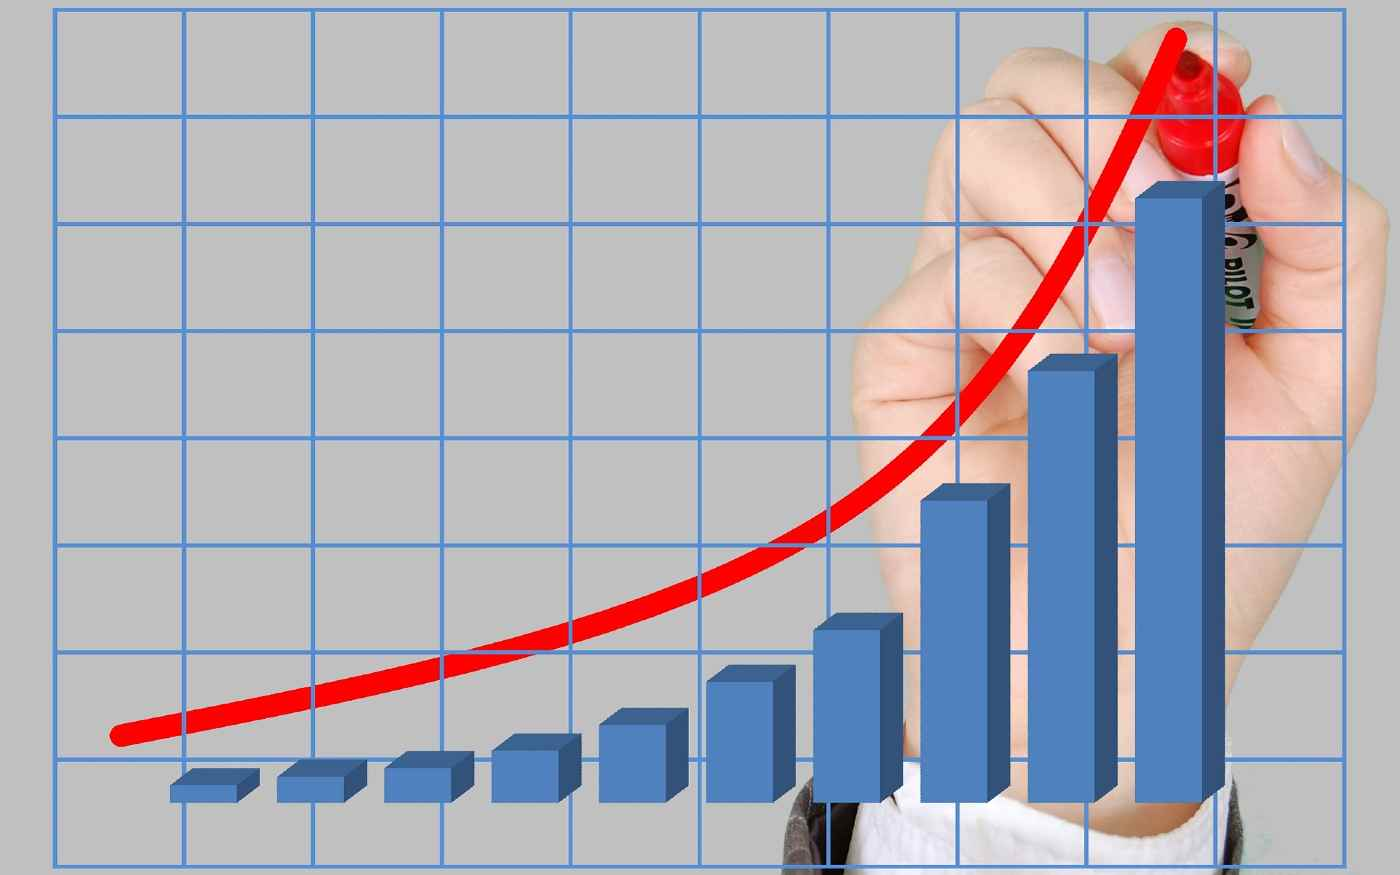 Image of a graph with increasing bars representing a rise in profits over time